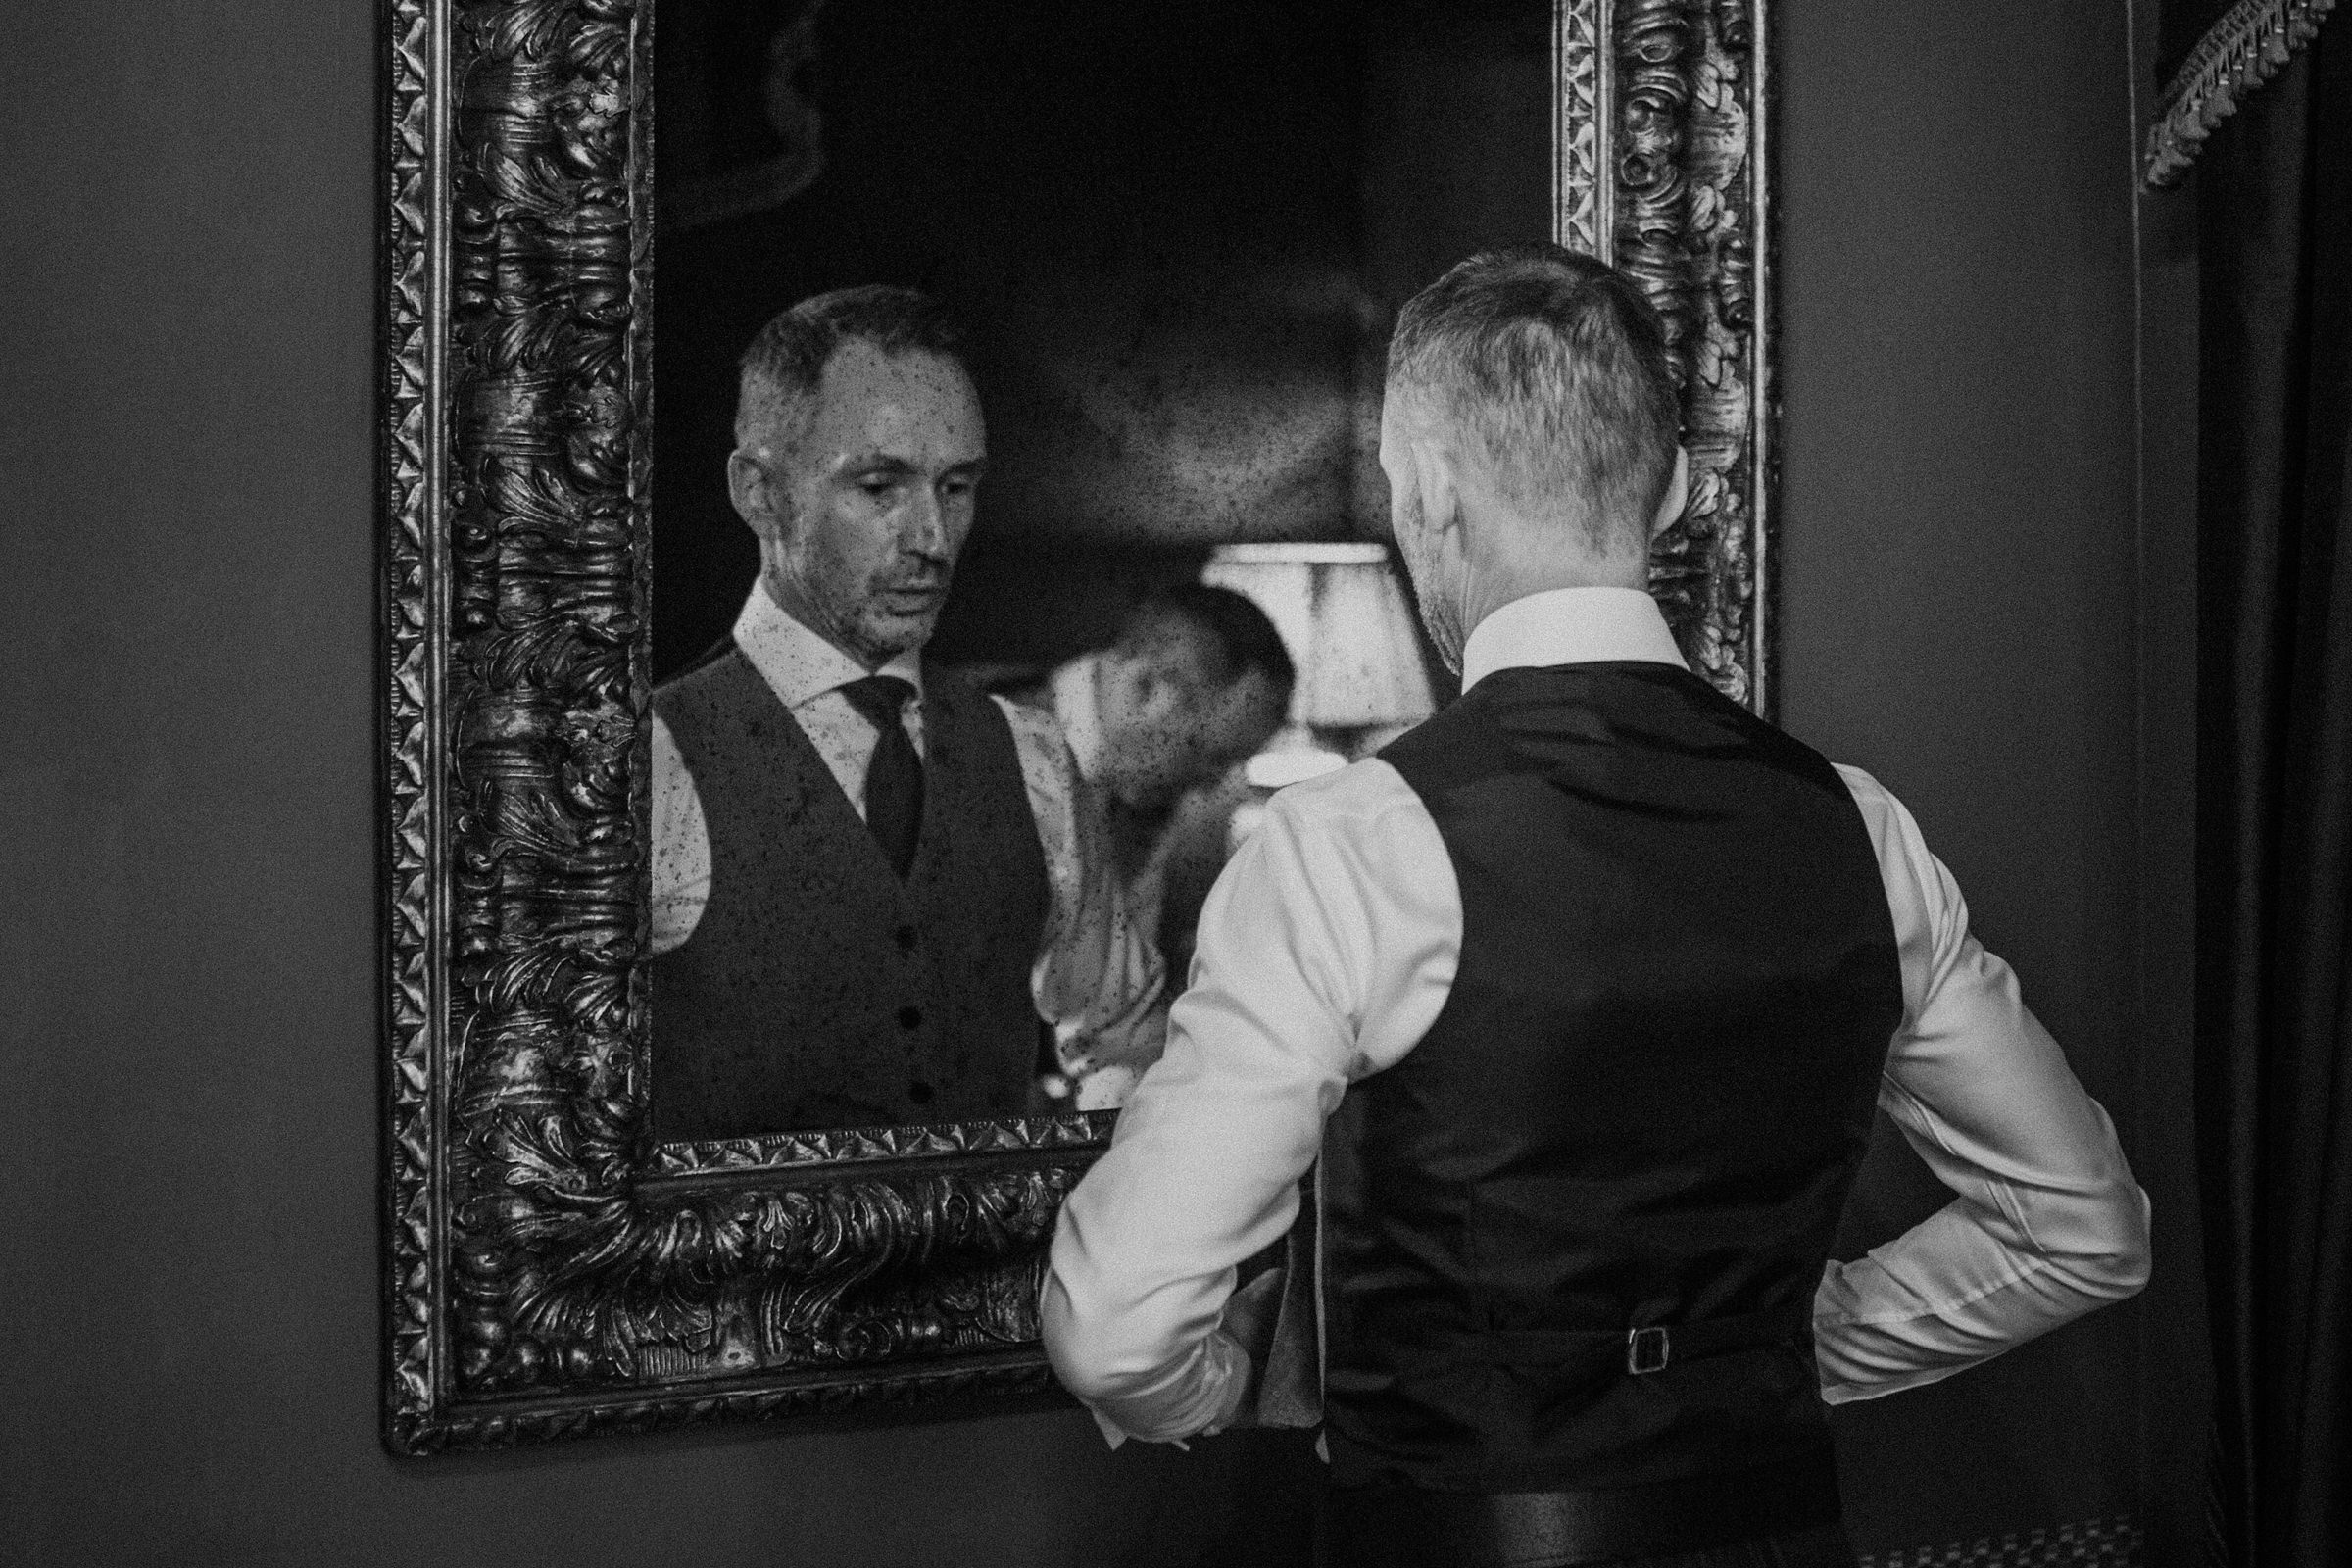 Groom primping in ornate mirror - photo by Tomas Juskaitis Photography